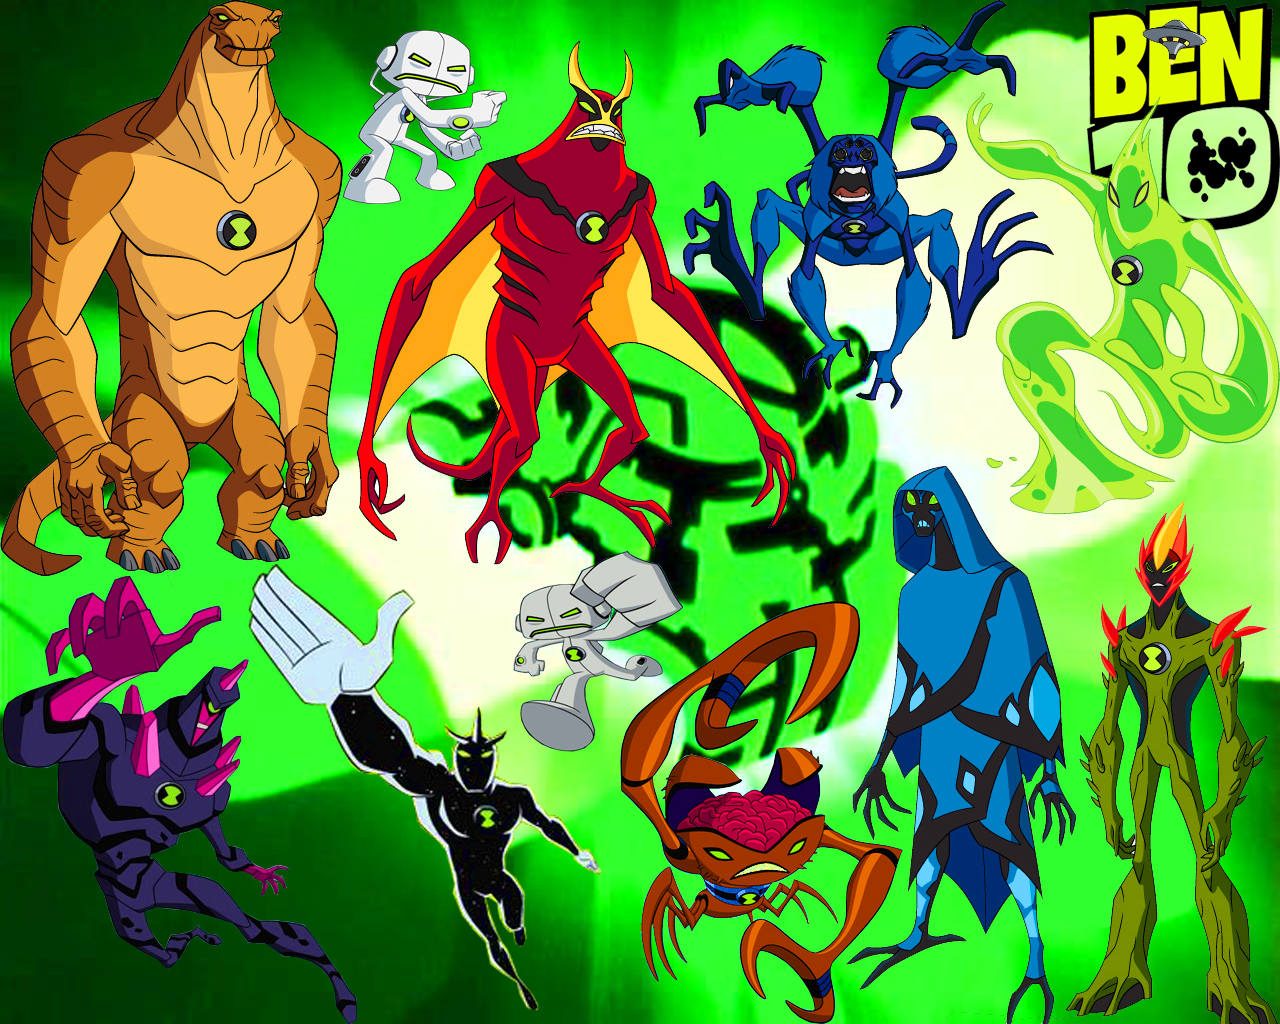 ben 10 alien force by desz19